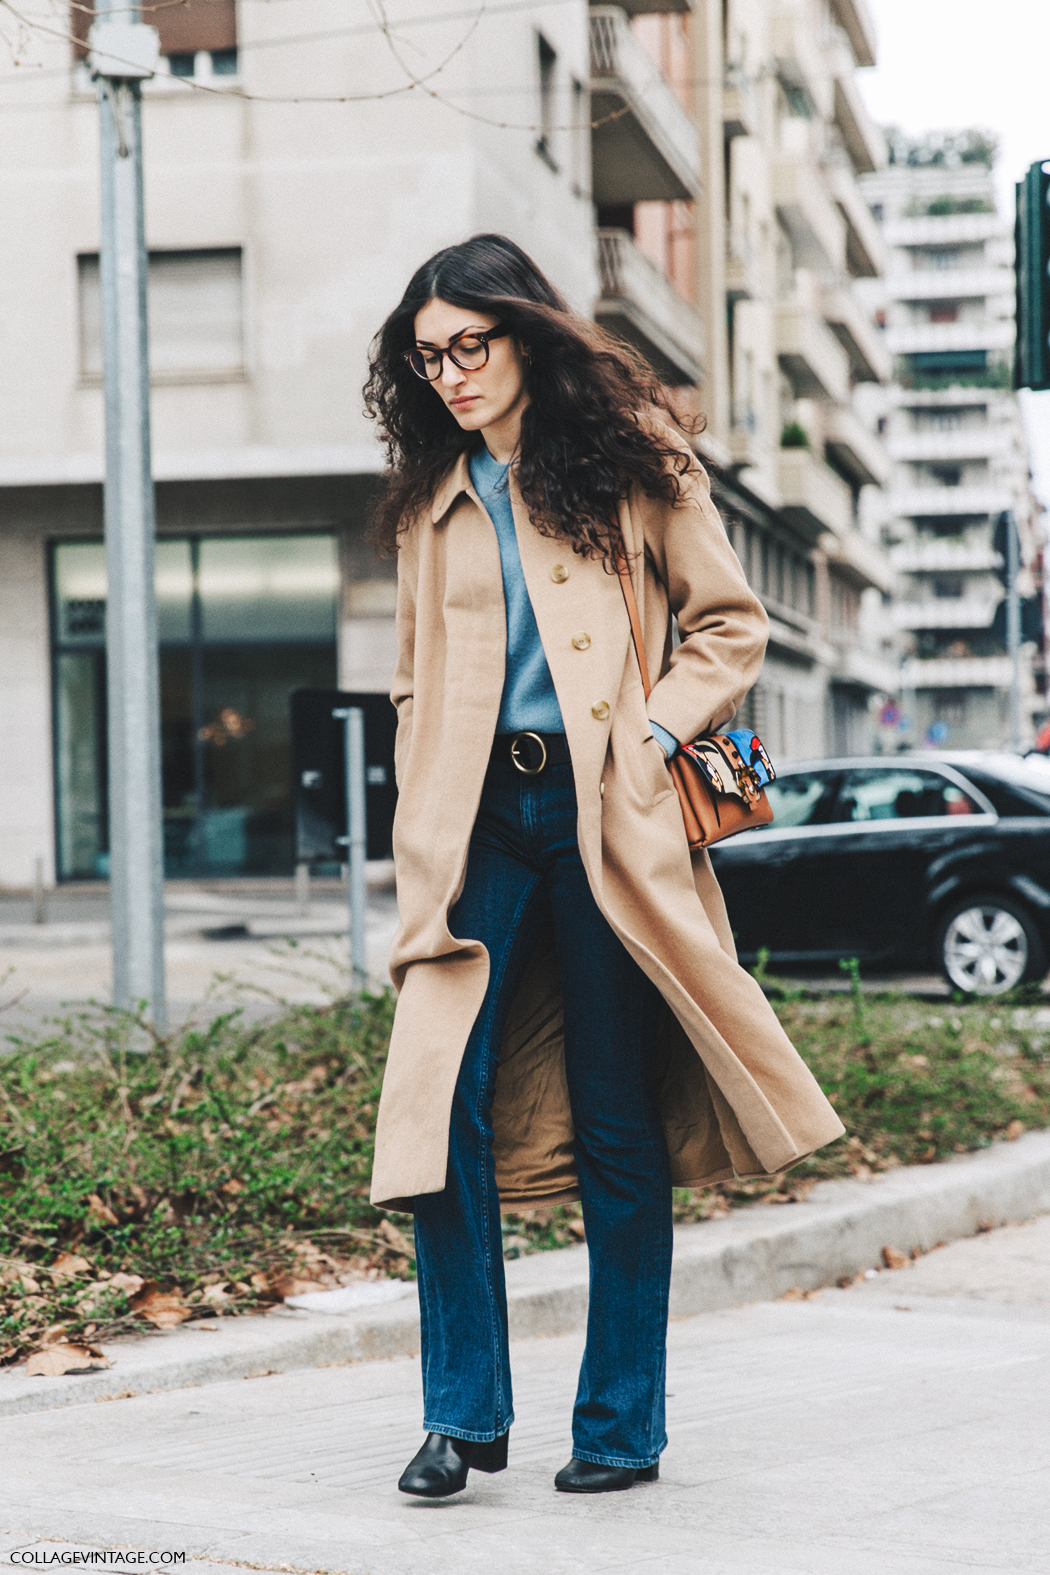 Milan_Fashion_Week_Fall_16-MFW-Street_Style-Collage_Vintage-Giulia_Tordini-Camel_Coat-Flared_Jeans-Paola_Cadematori_Bag-2